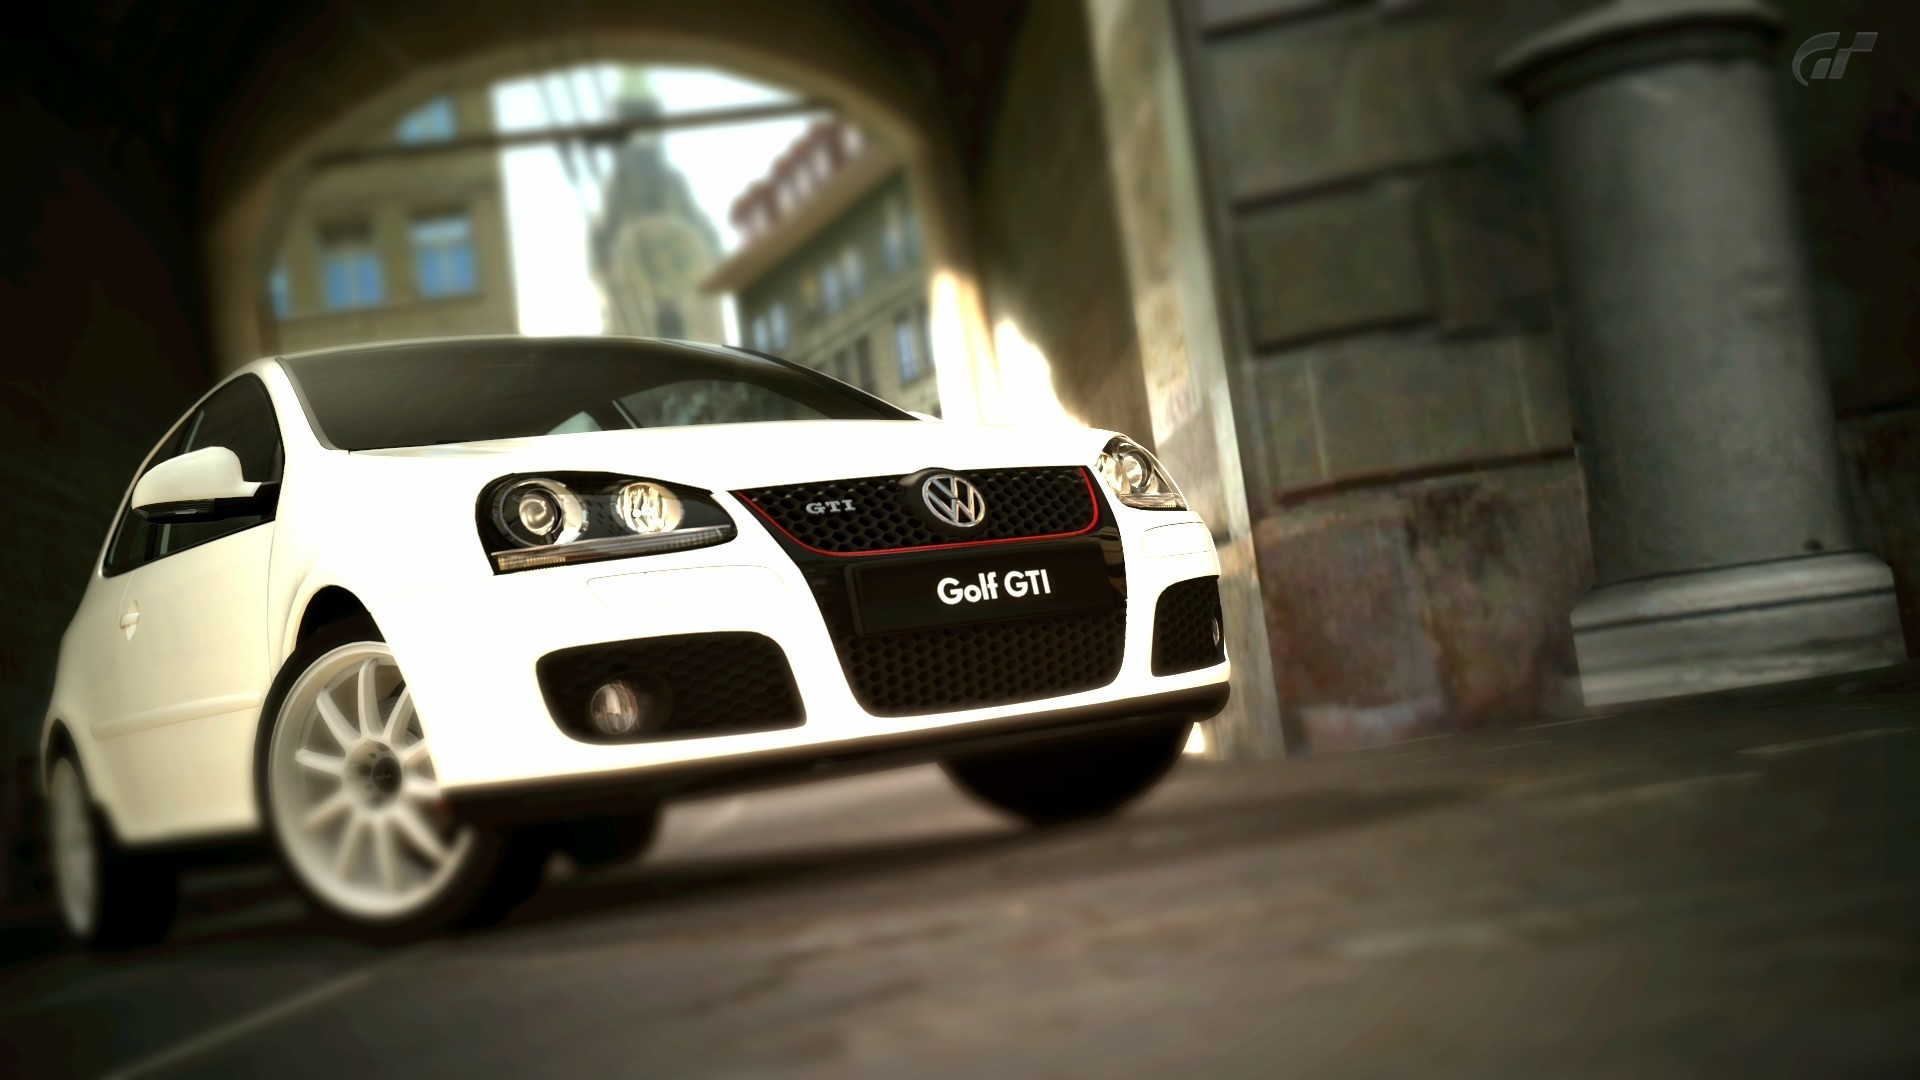 streets white market cars HD Wallpaper